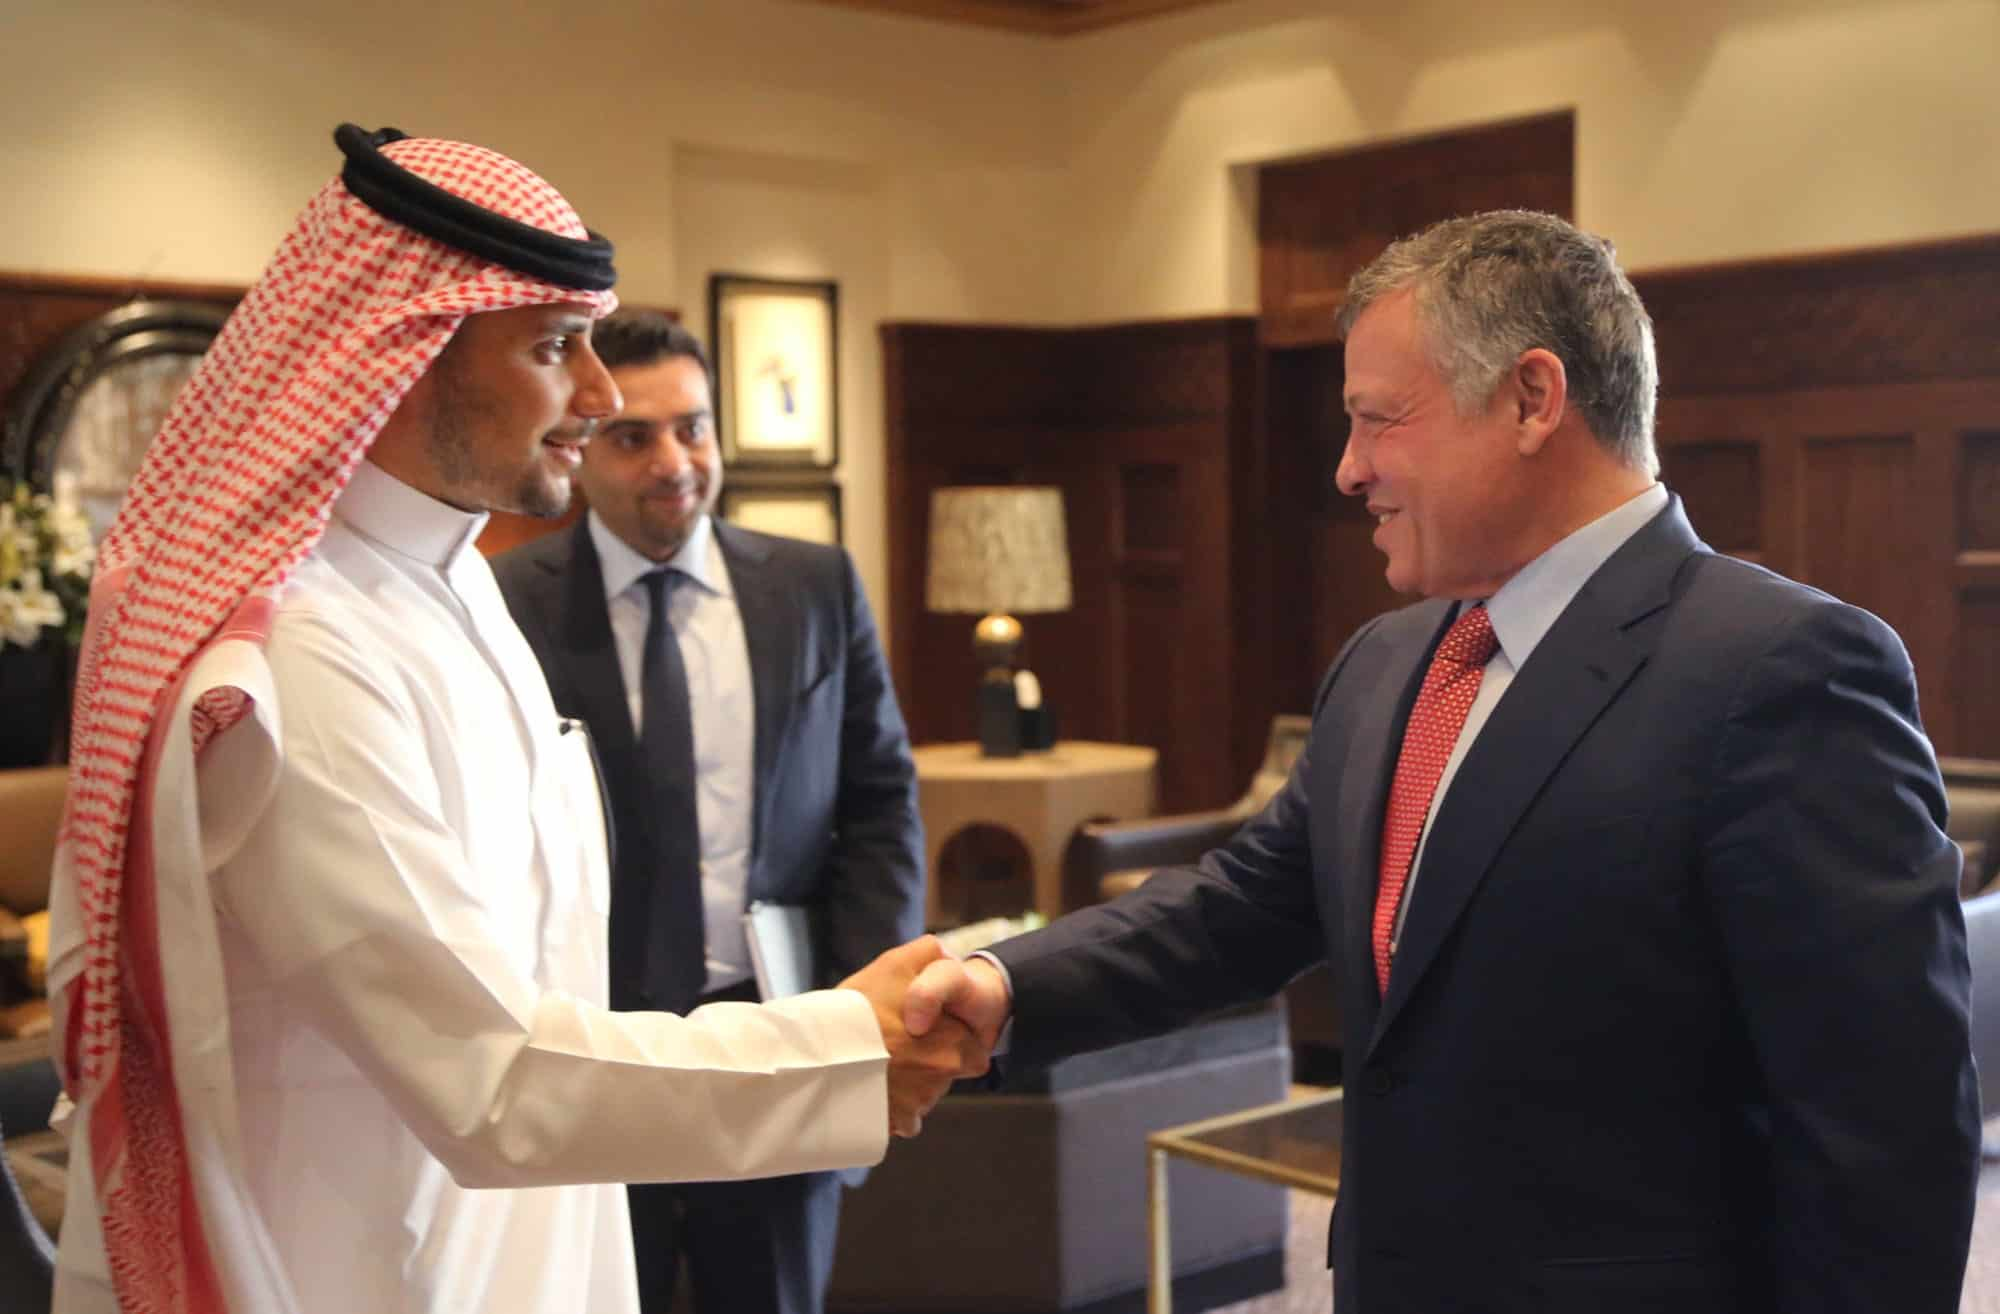 HRH Prince Khalen and His Majesty King Abdullah